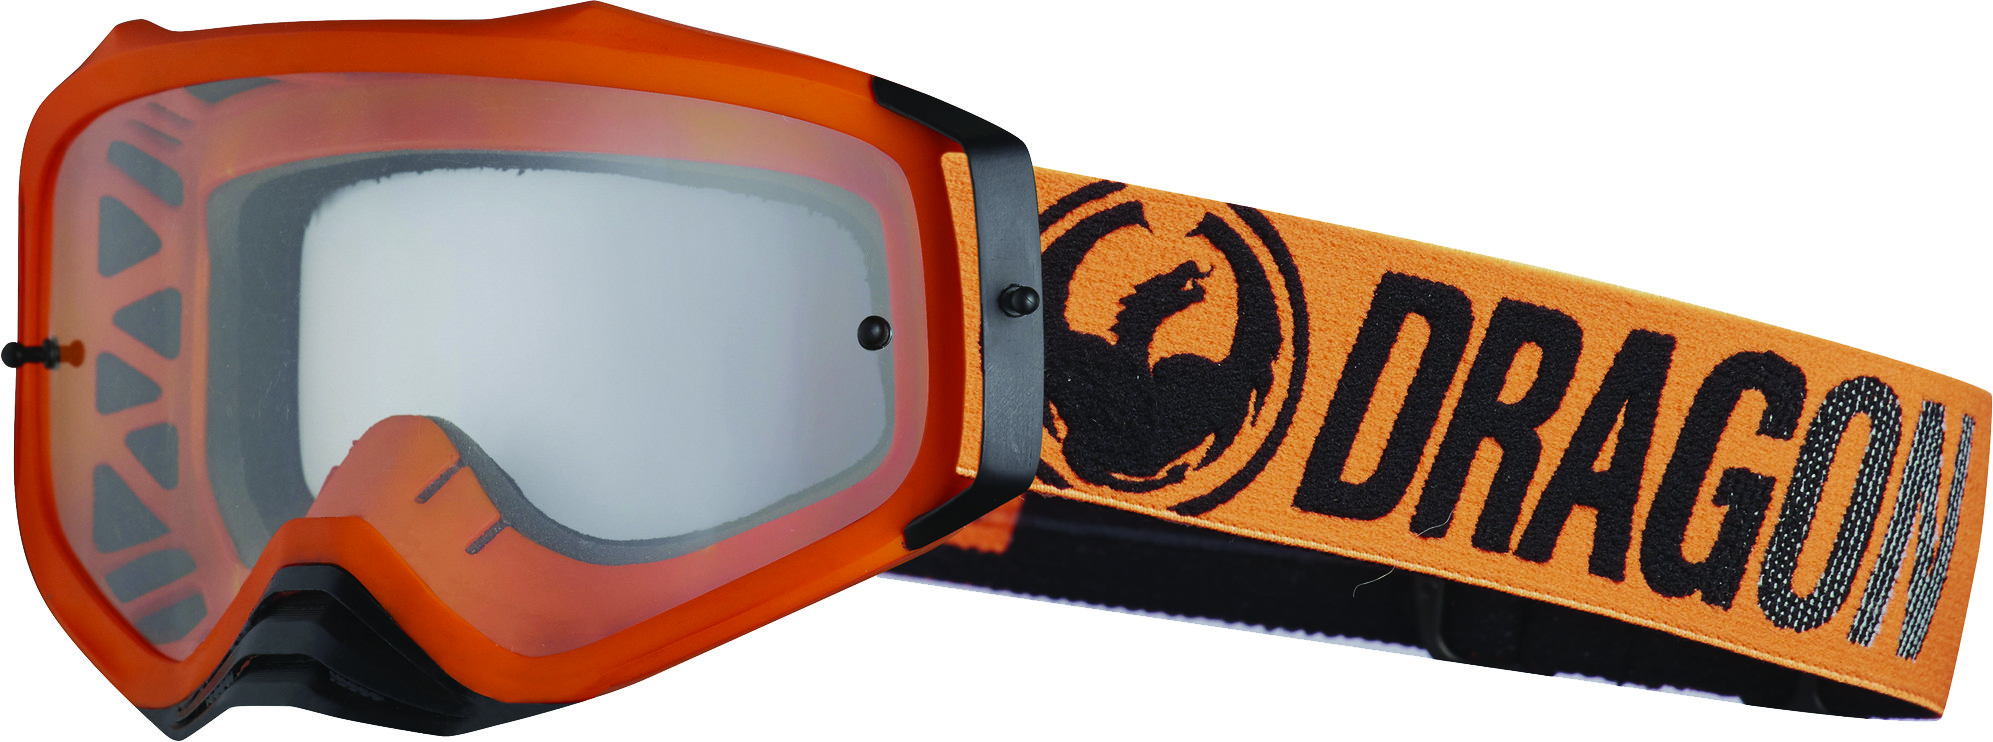 Mxv Plus Goggle Break Orange W/Clear Lens